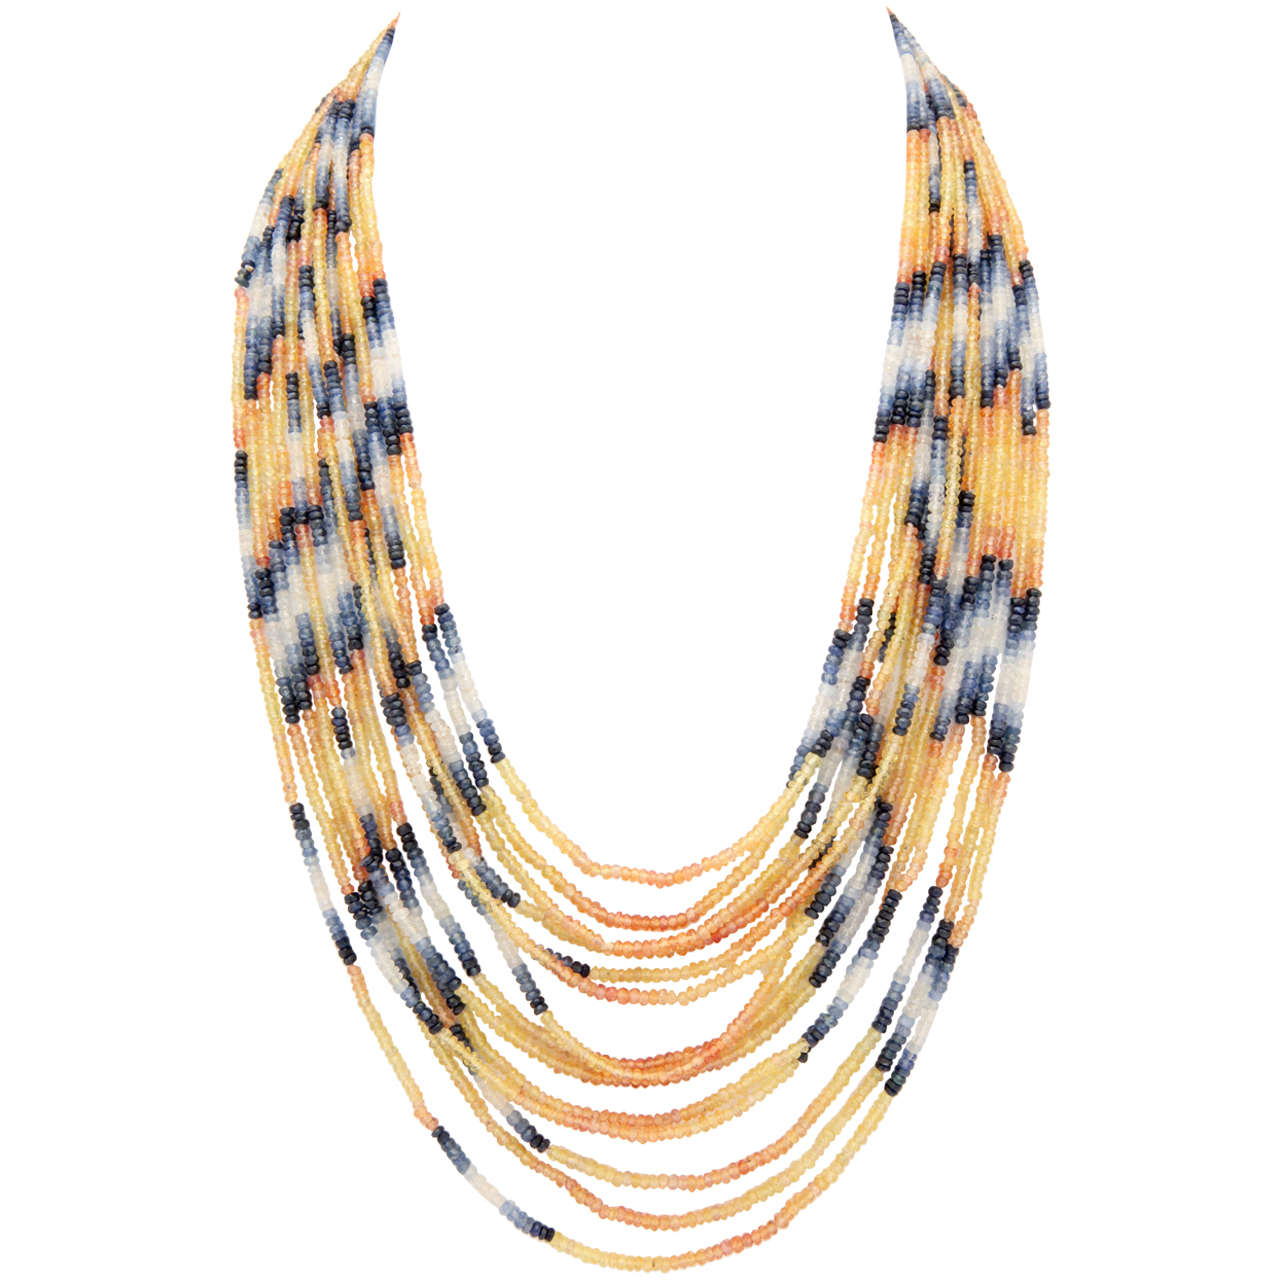 Spectacular 14 Strand Sapphire Bead Necklace